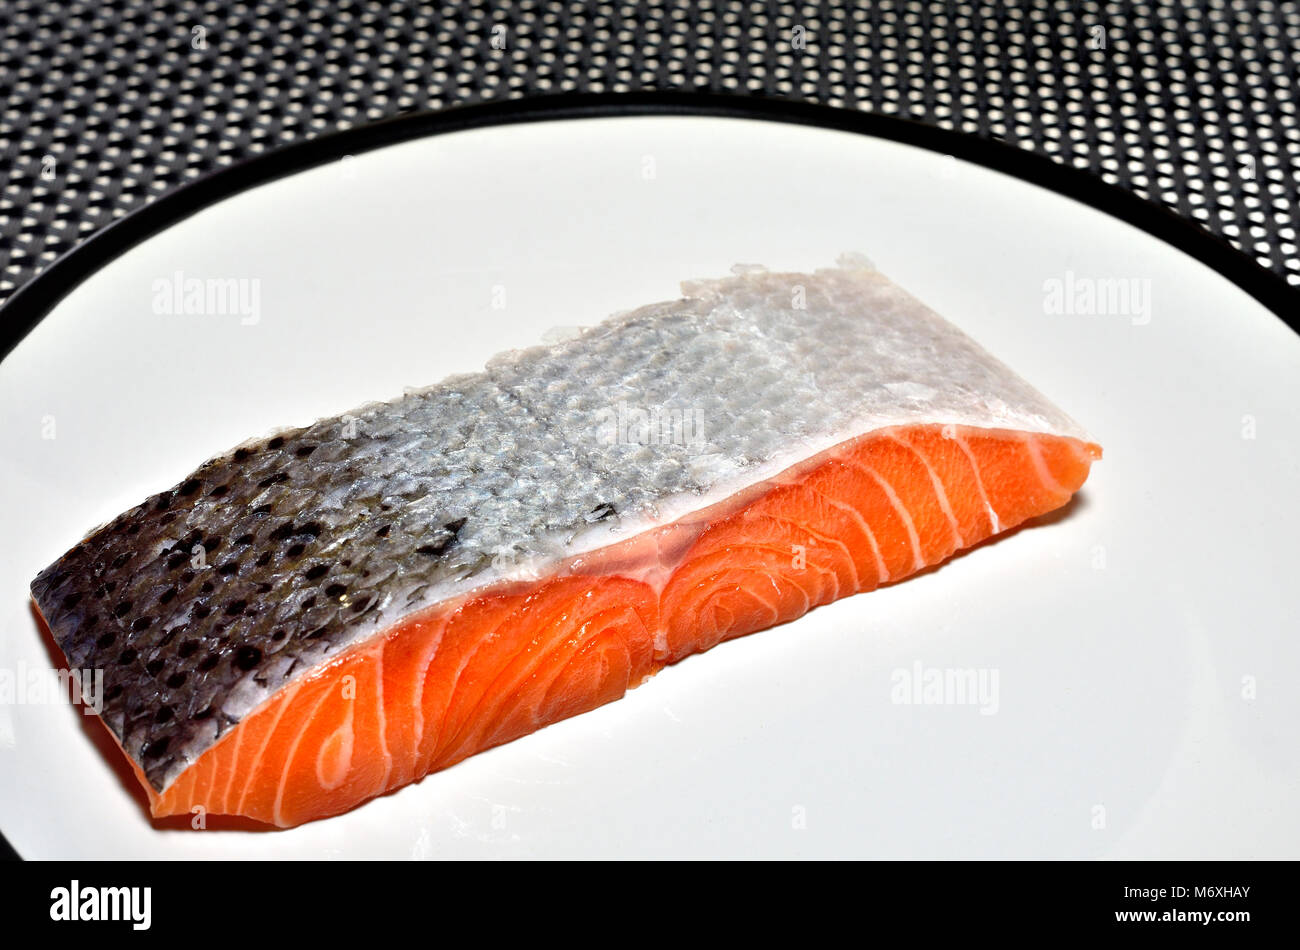 Raw Salmon steak / fillet on a white plate - Stock Image